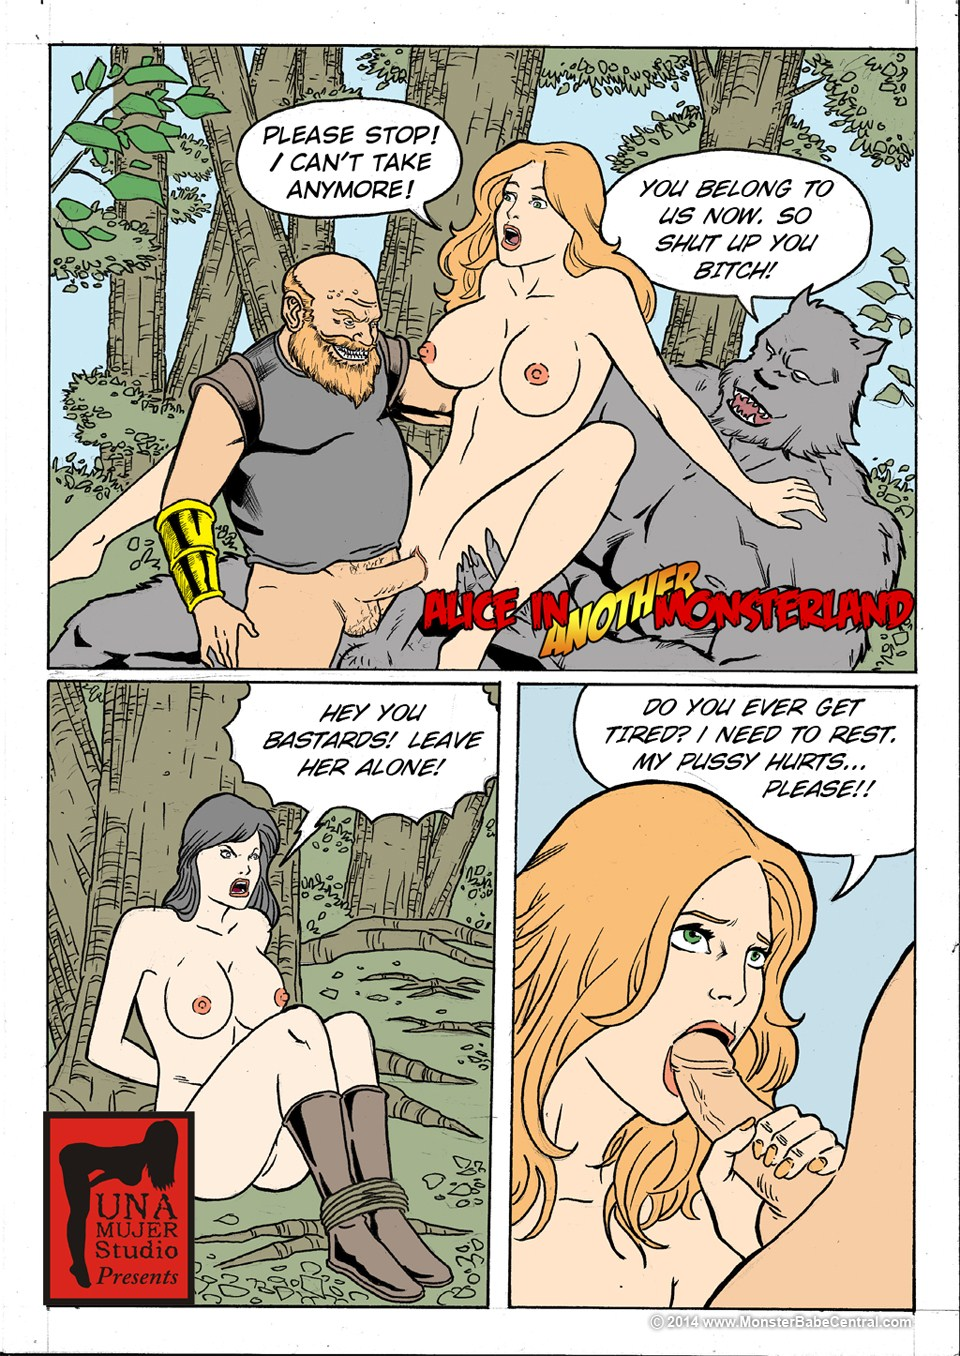 Porn Comics - Alice in Monsterland 15-16 porn comics 8 muses